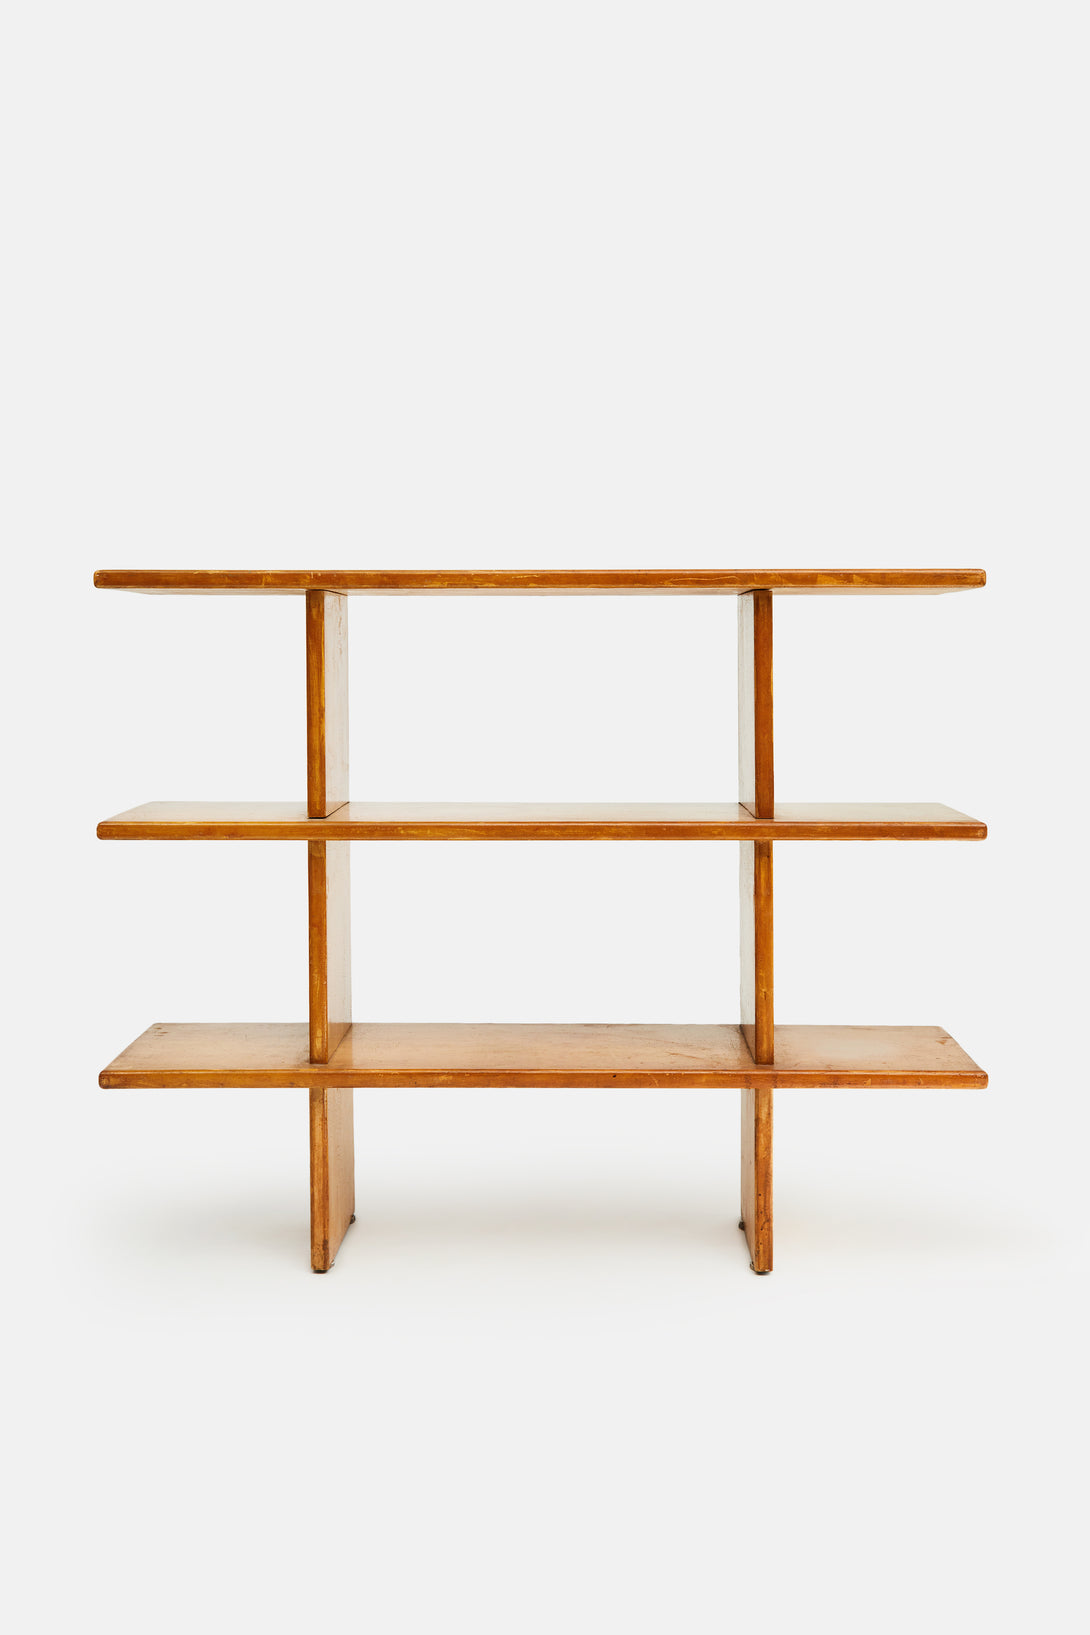 Russel Wright 3-Tiered Shelf